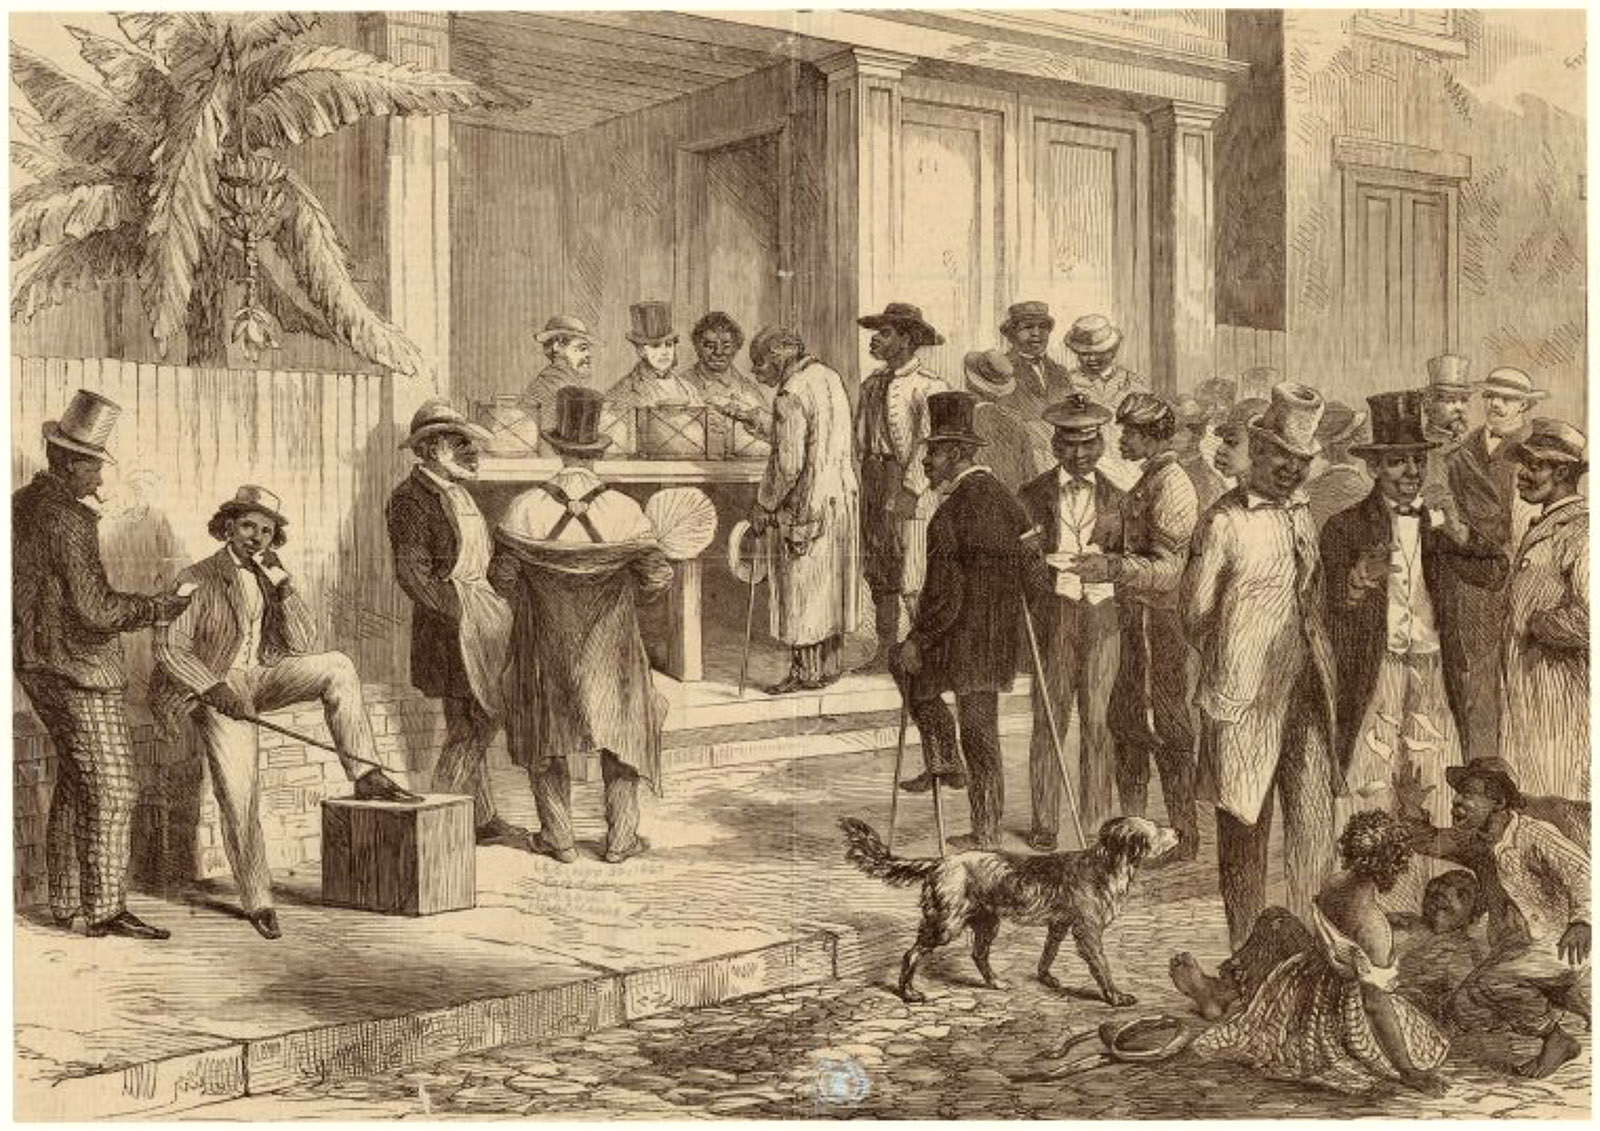 Engraving of freedmen voting in New Orleans, 1867